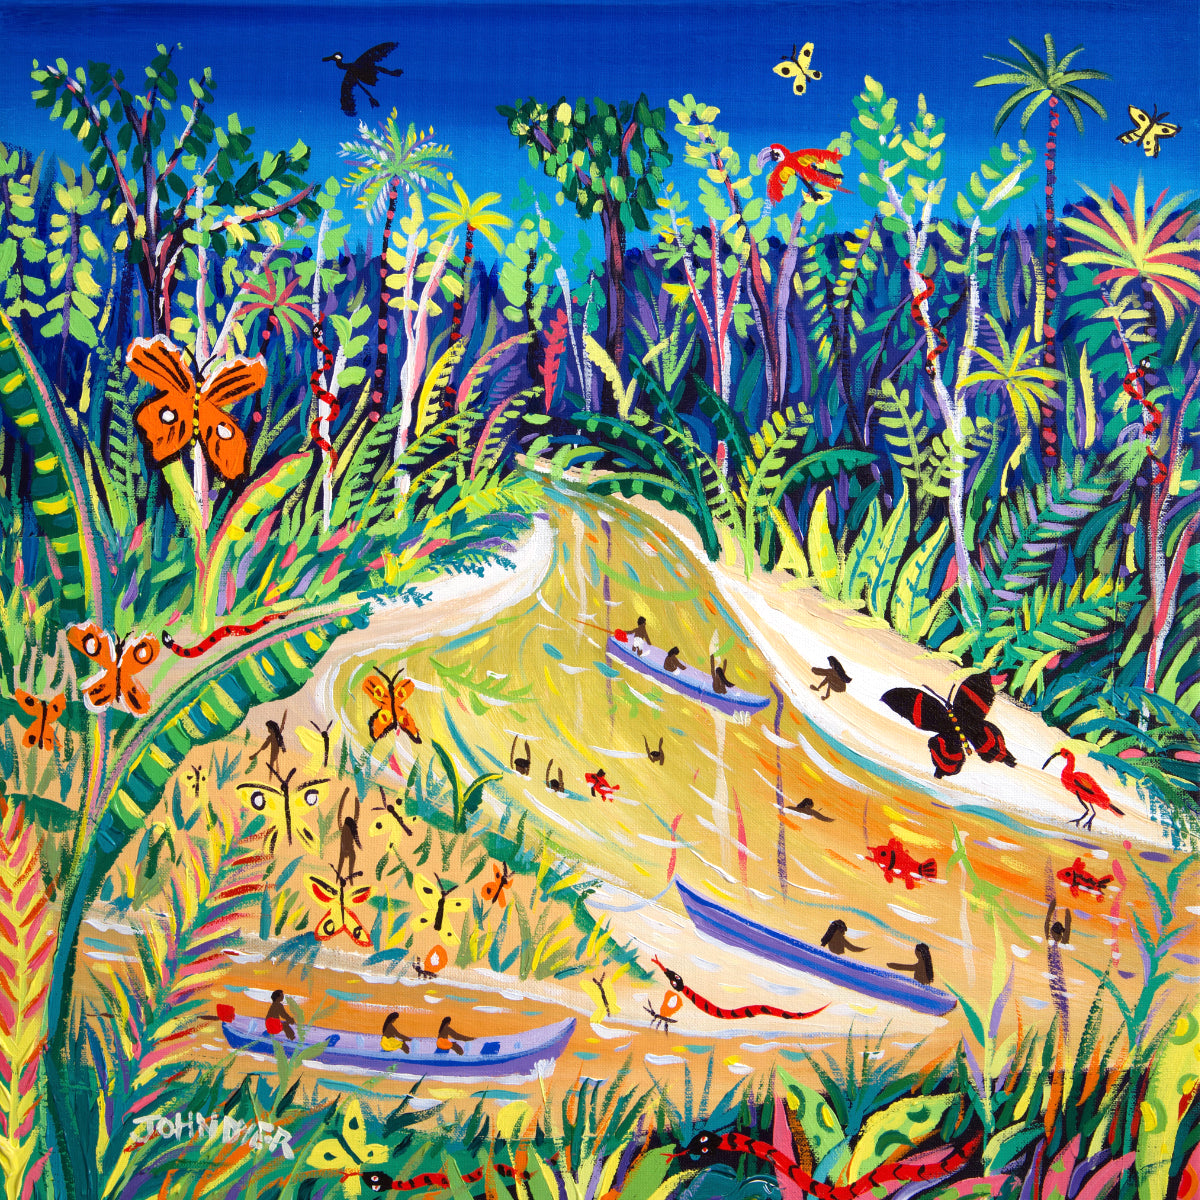 John Dyer Painting. Spiritual Butterflies, Rio Gregório, Amazon Rainforest, Brazil